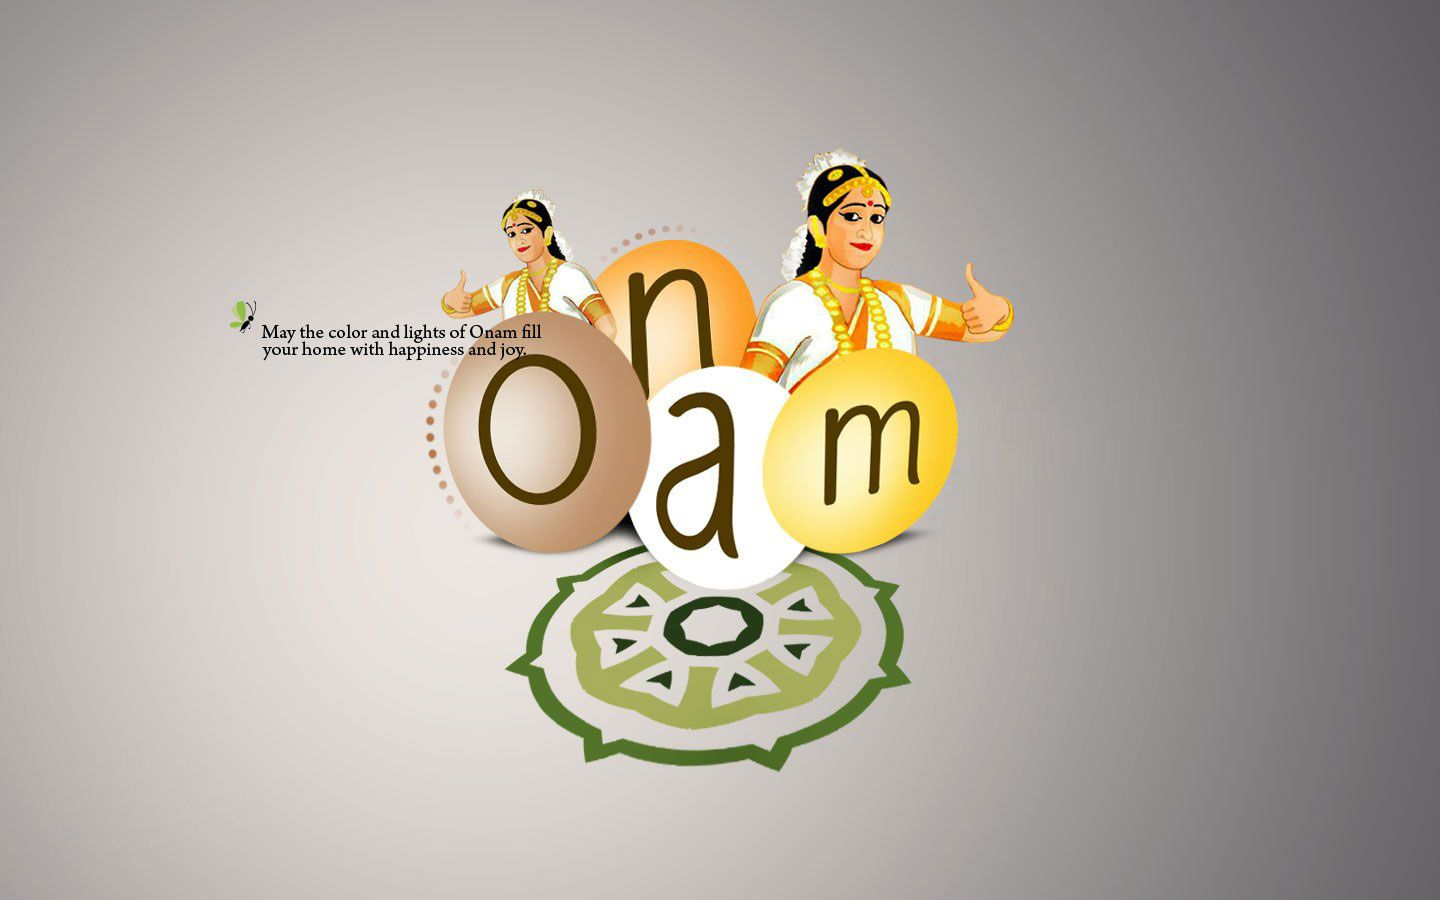 Onam 2014 wishes greetings images onam wishes quotes and explore onam greetings greetings images and more kristyandbryce Gallery